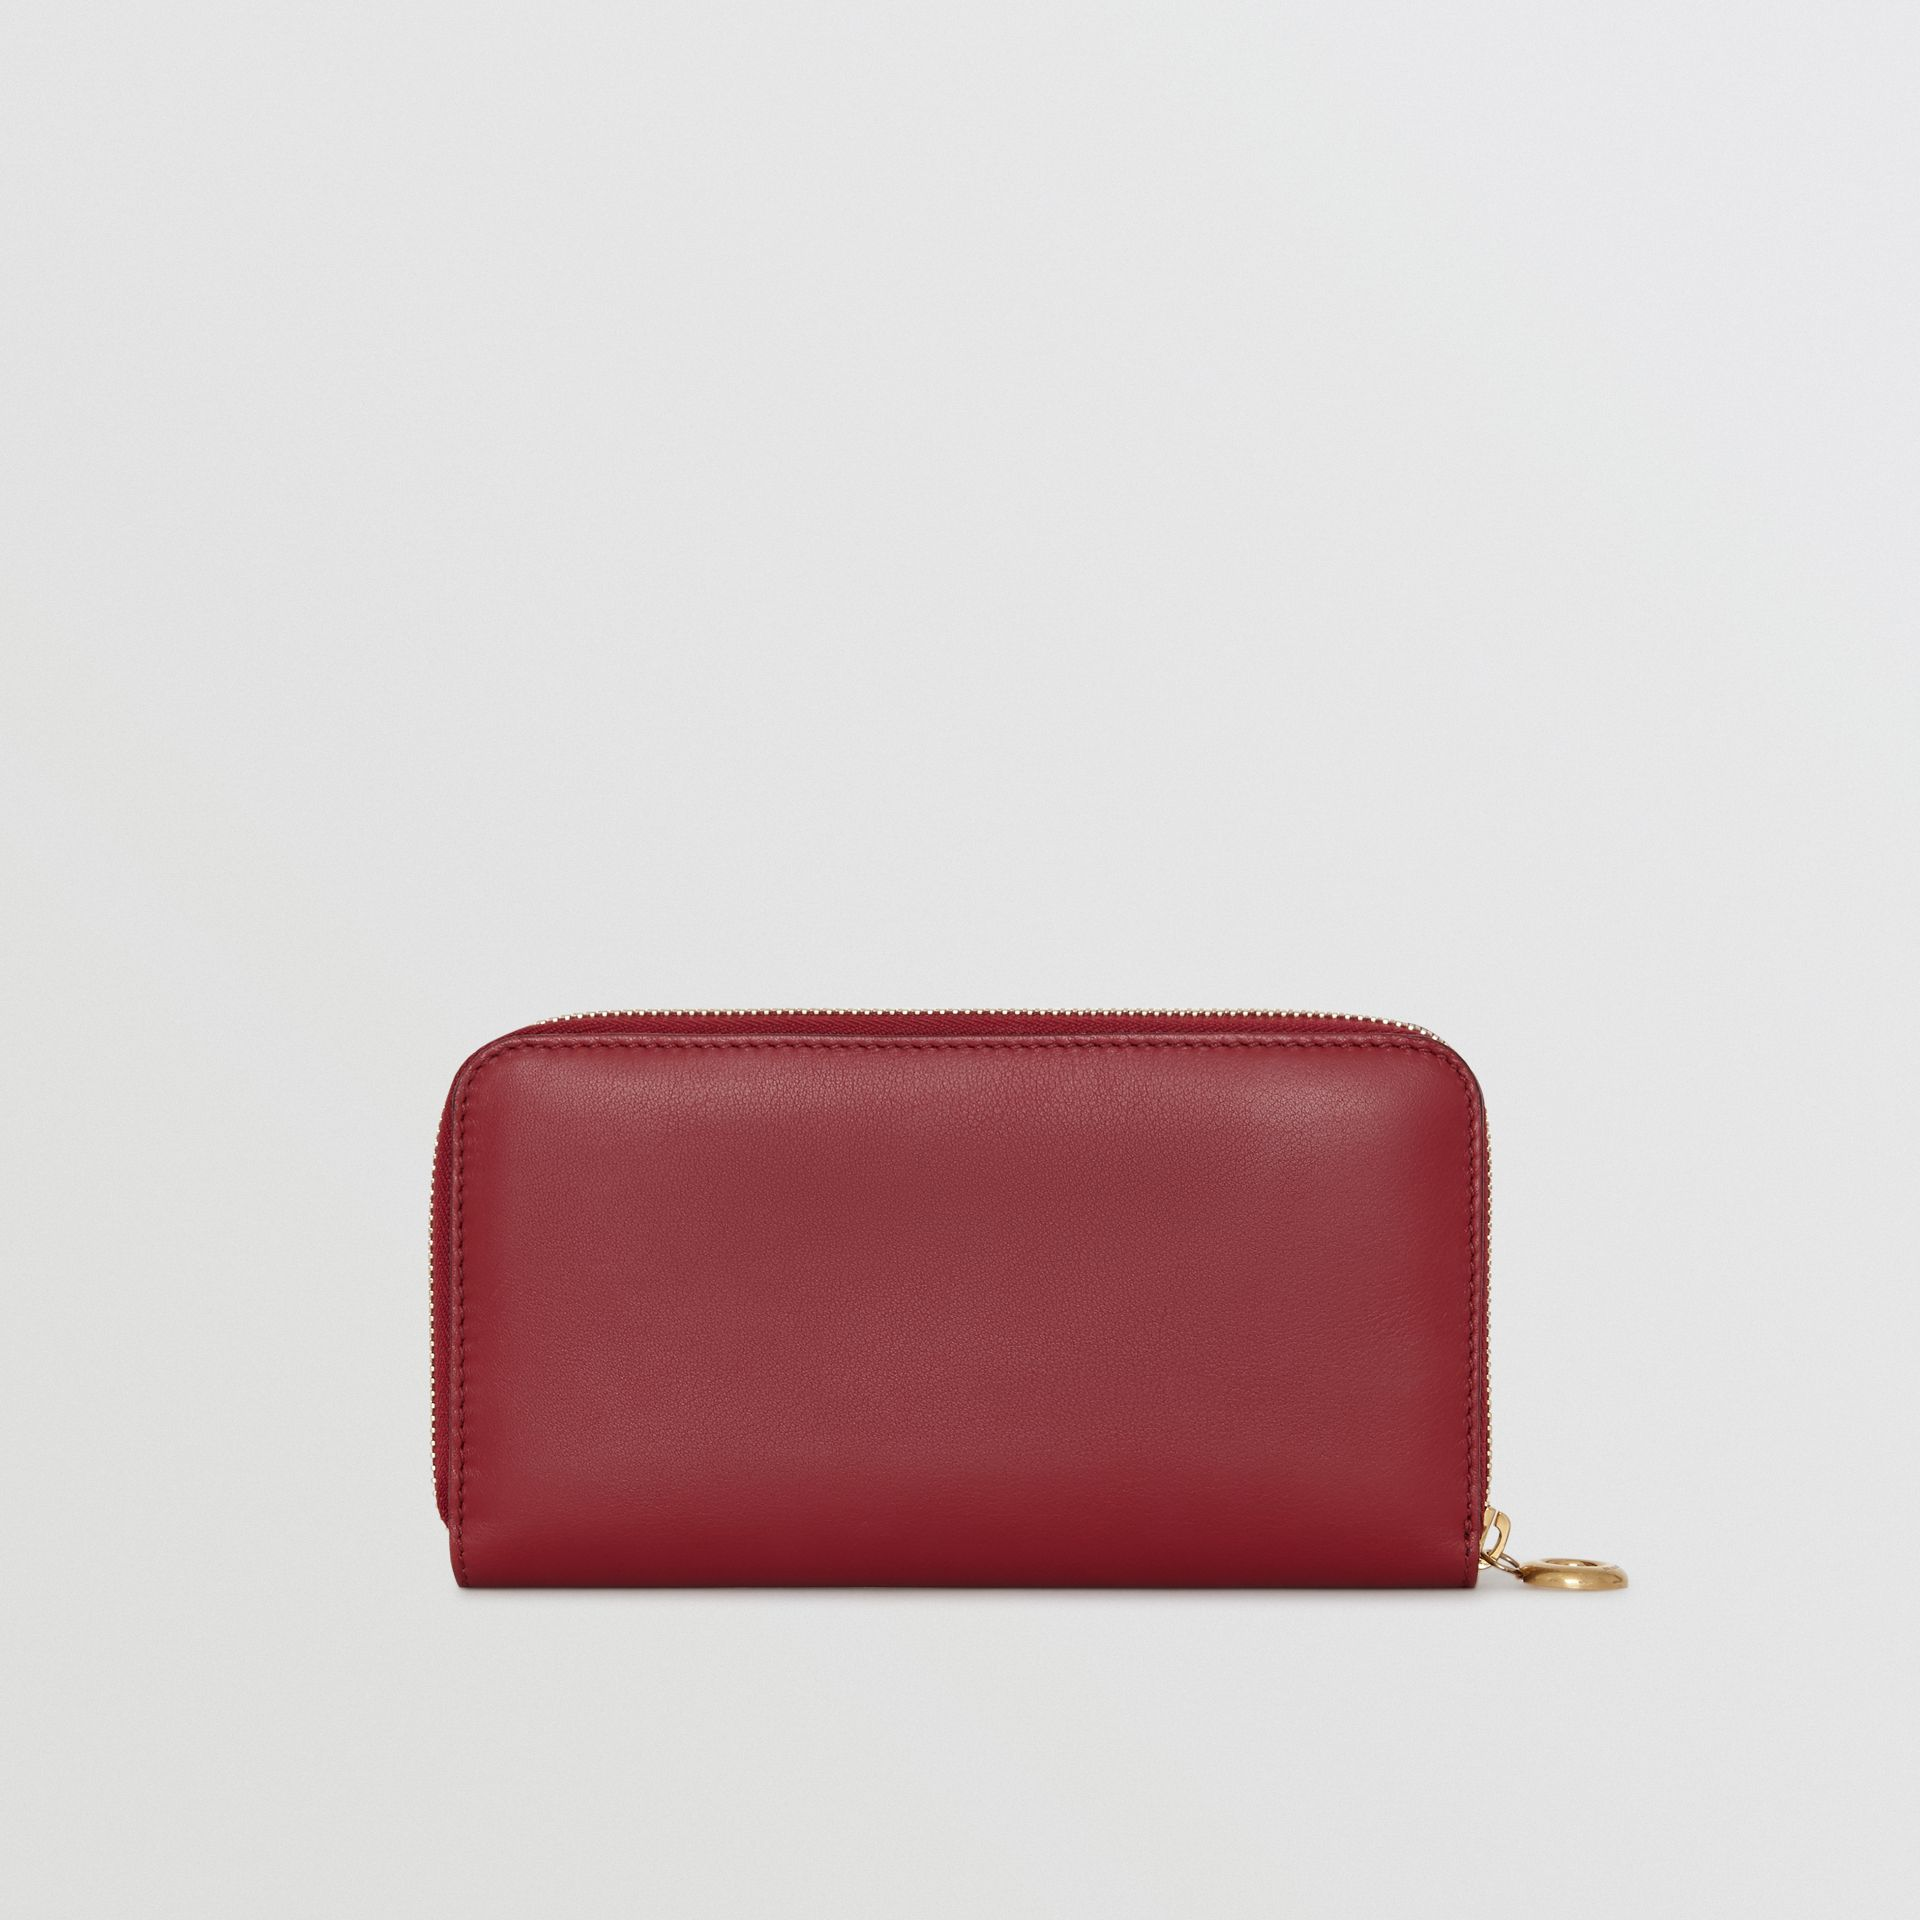 Embossed Crest Two-tone Leather Ziparound Wallet in Crimson - Women | Burberry Hong Kong - gallery image 4